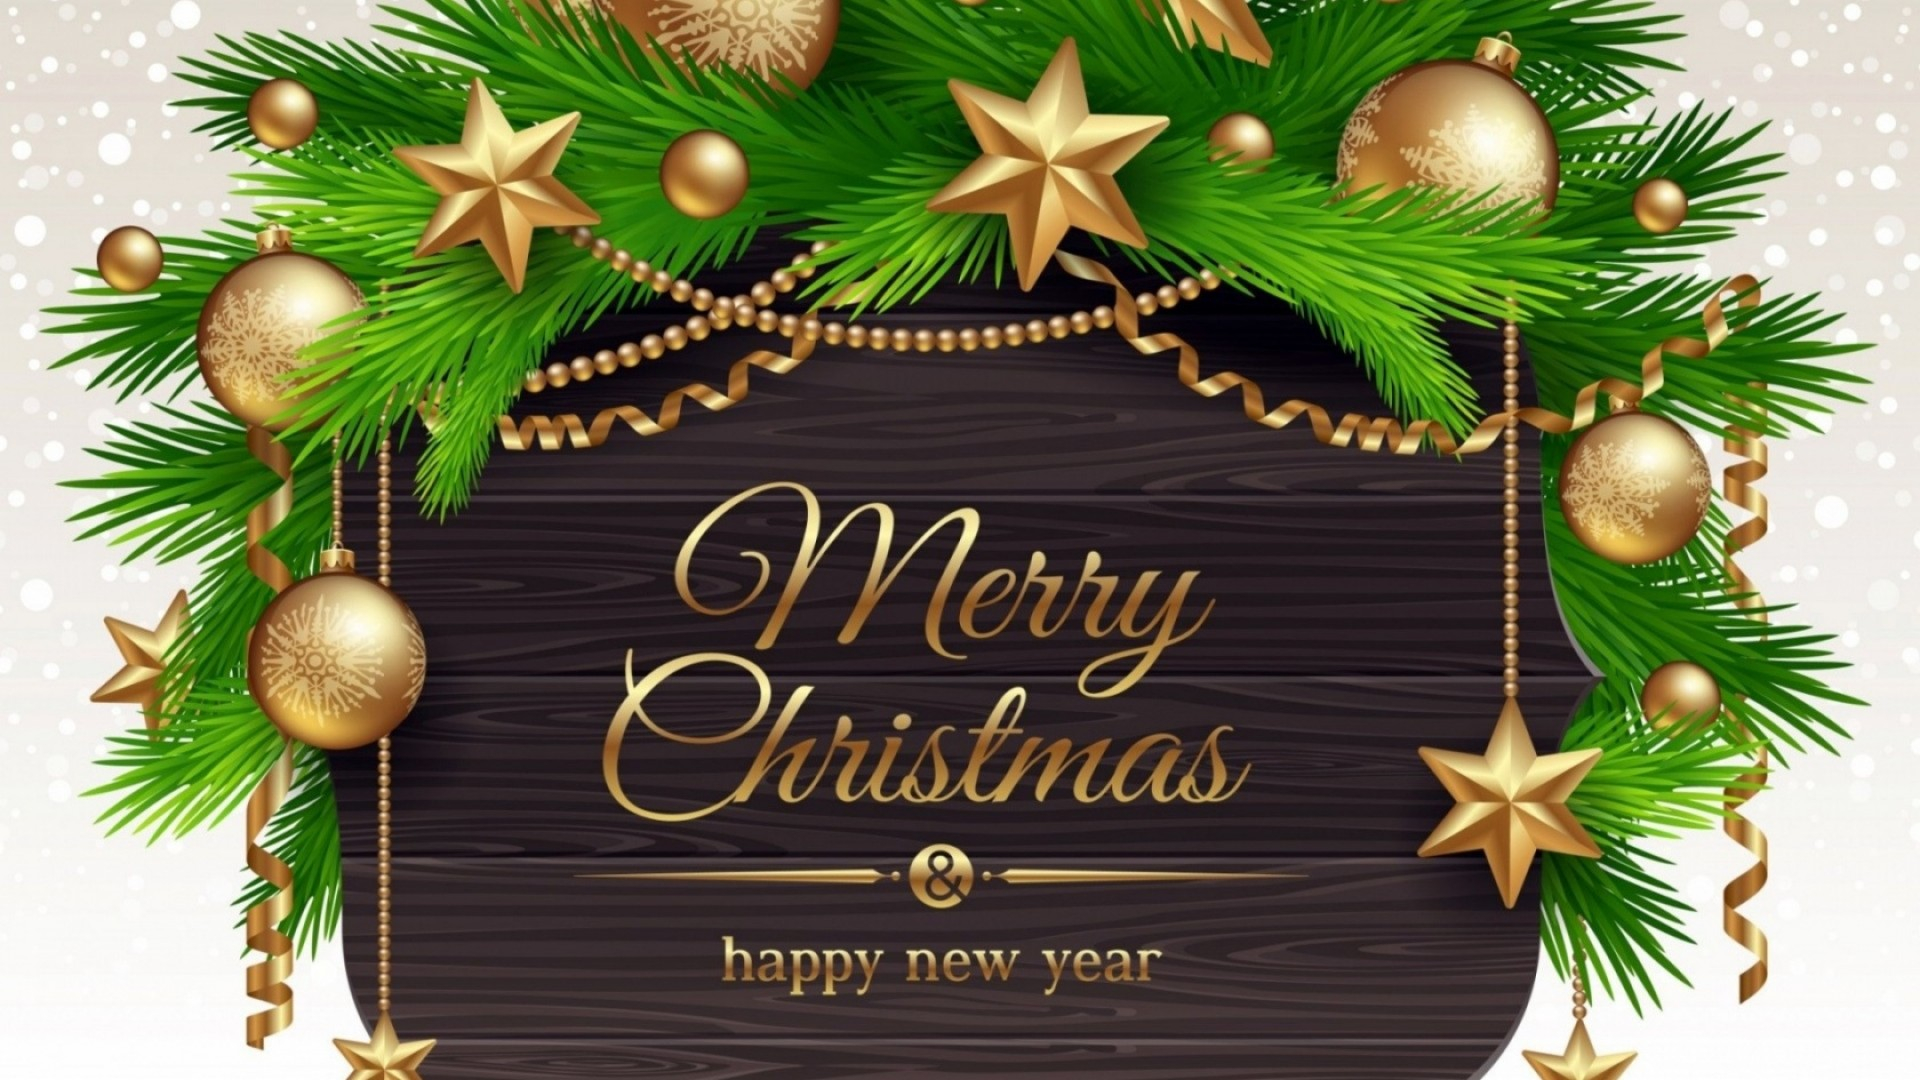 happy christmas wishes wallpapers free download